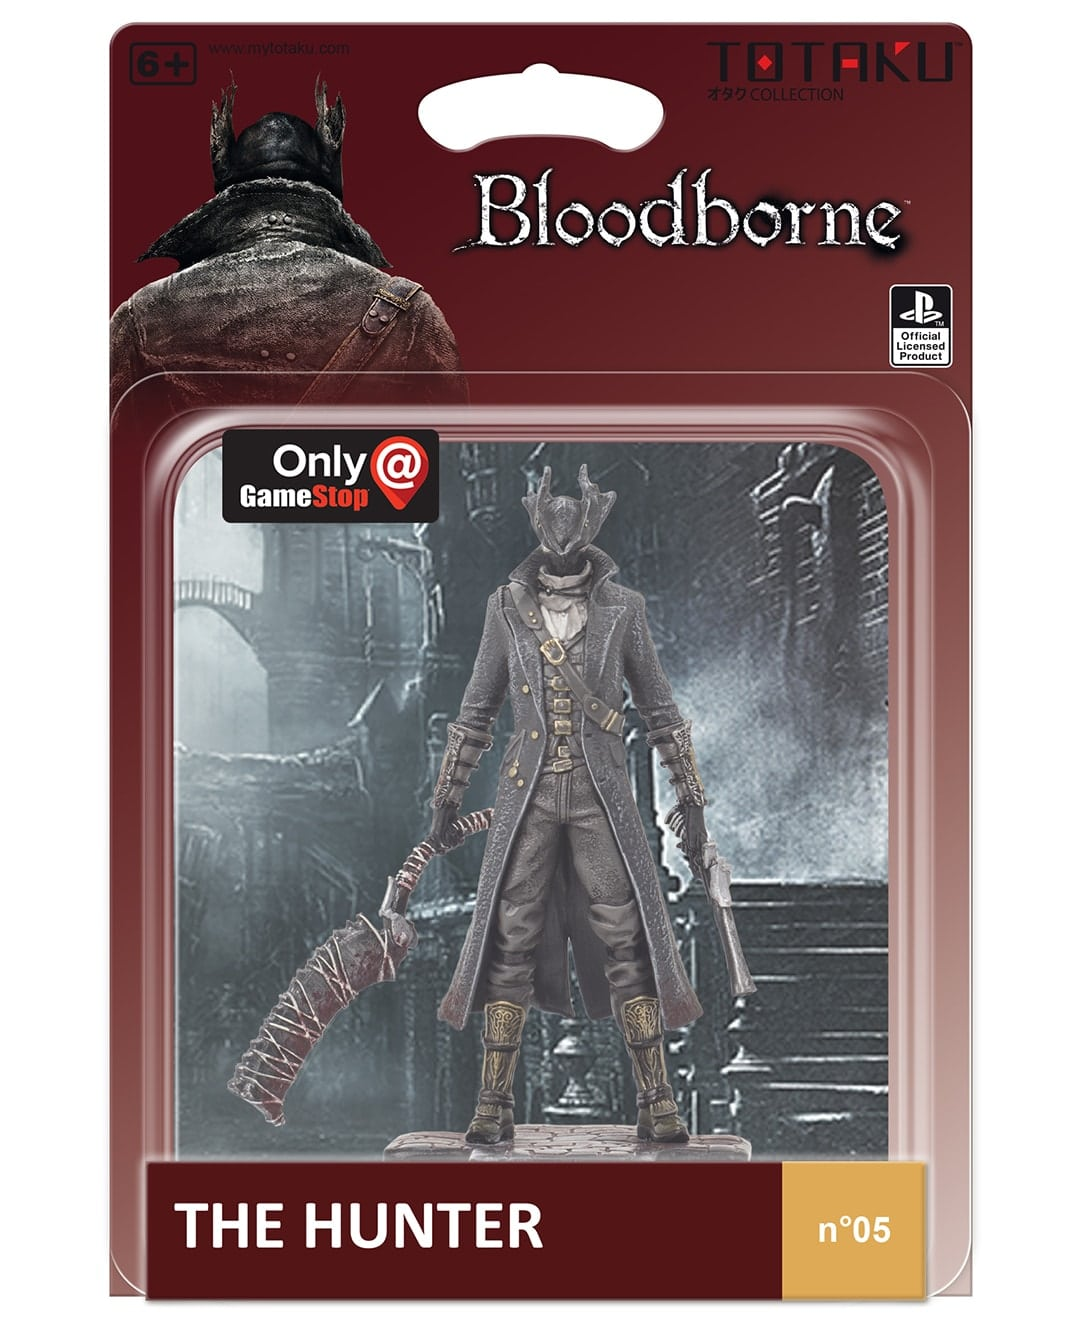 totaku cacciatore bloodborne box min - Totaku Collection - zestaw figurek z bohaterami PlayStation